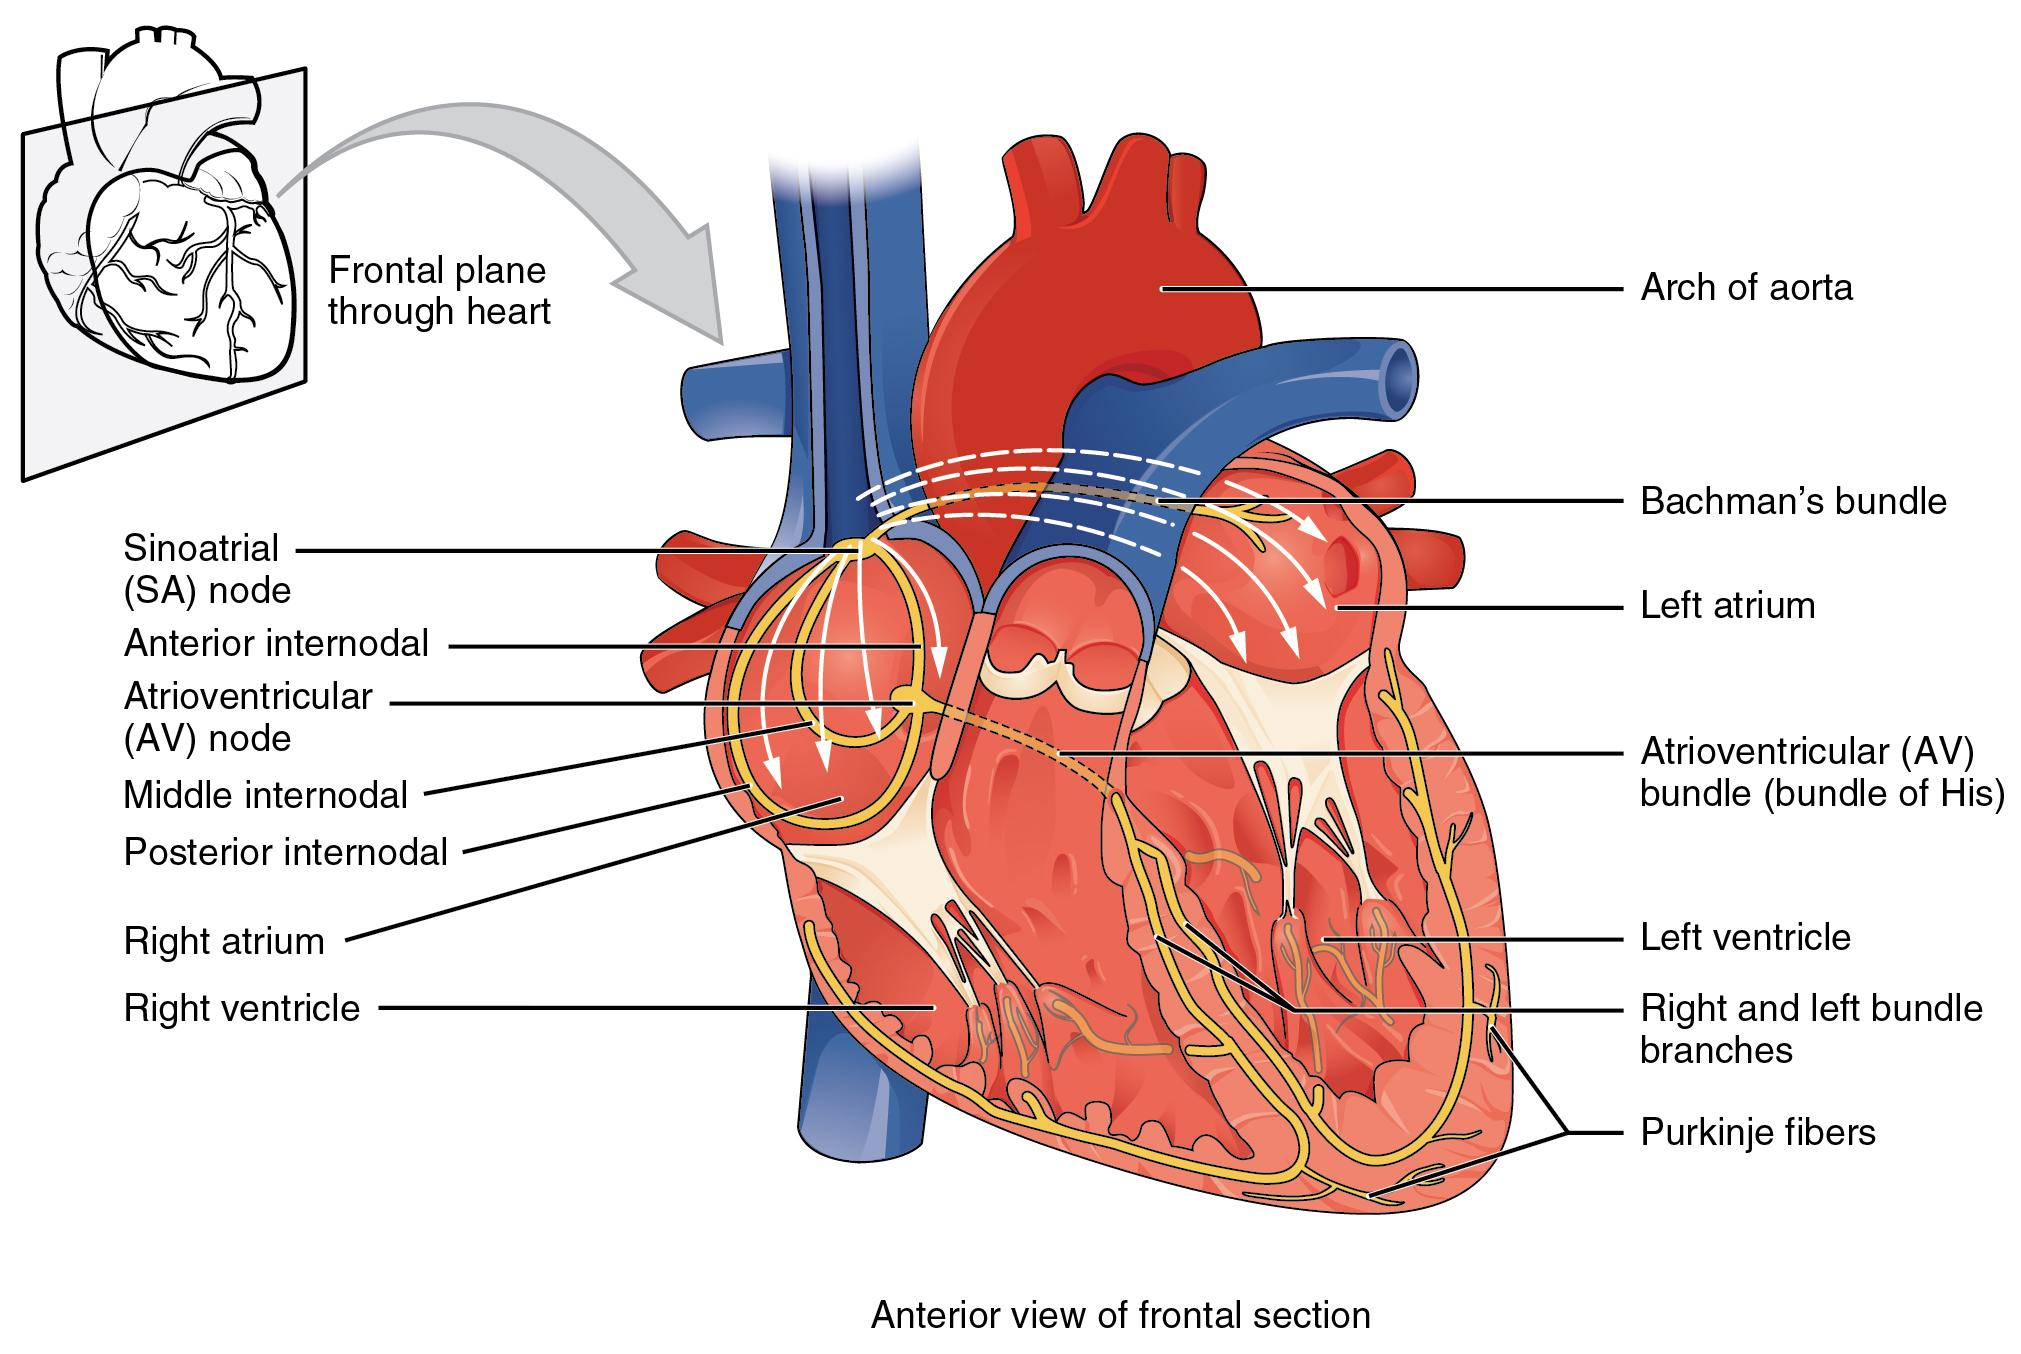 Illustration of human heart from anterior view of frontal section with labels for major areas. Also has small inset illustration of frontal plane through heart.